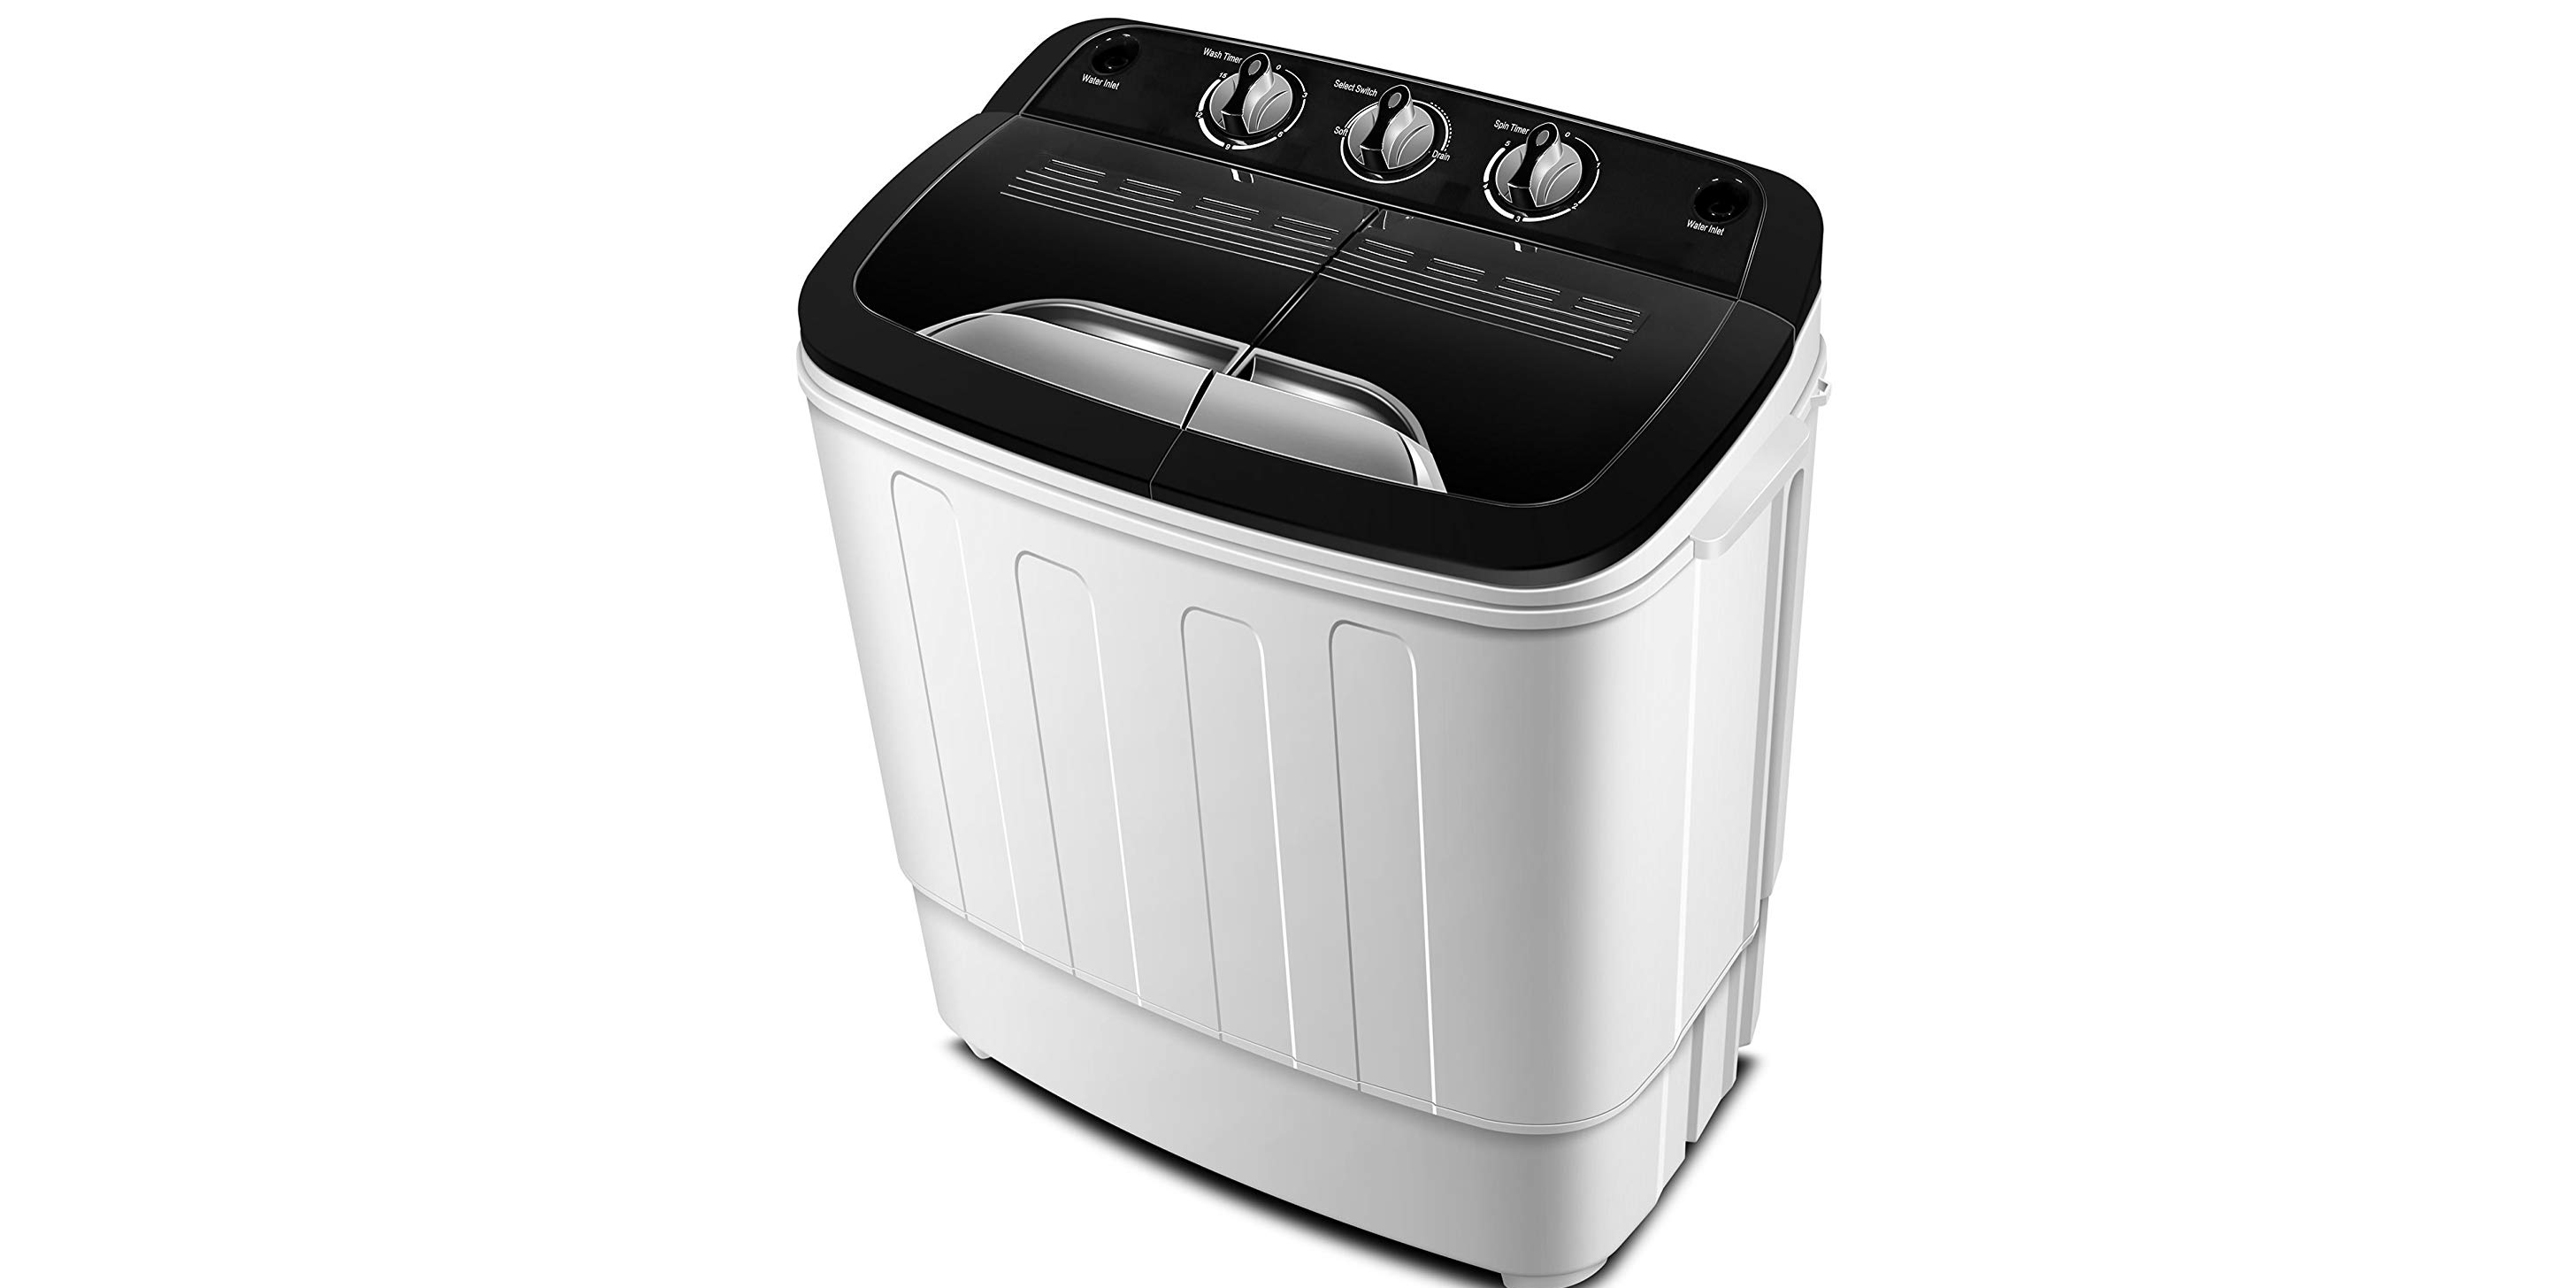 SUPER DEAL Portable Washing Machine Twin Tub 10lbs Capacity with Spin Cycle Dryer Dorm Rooms Lightweight for Apartments